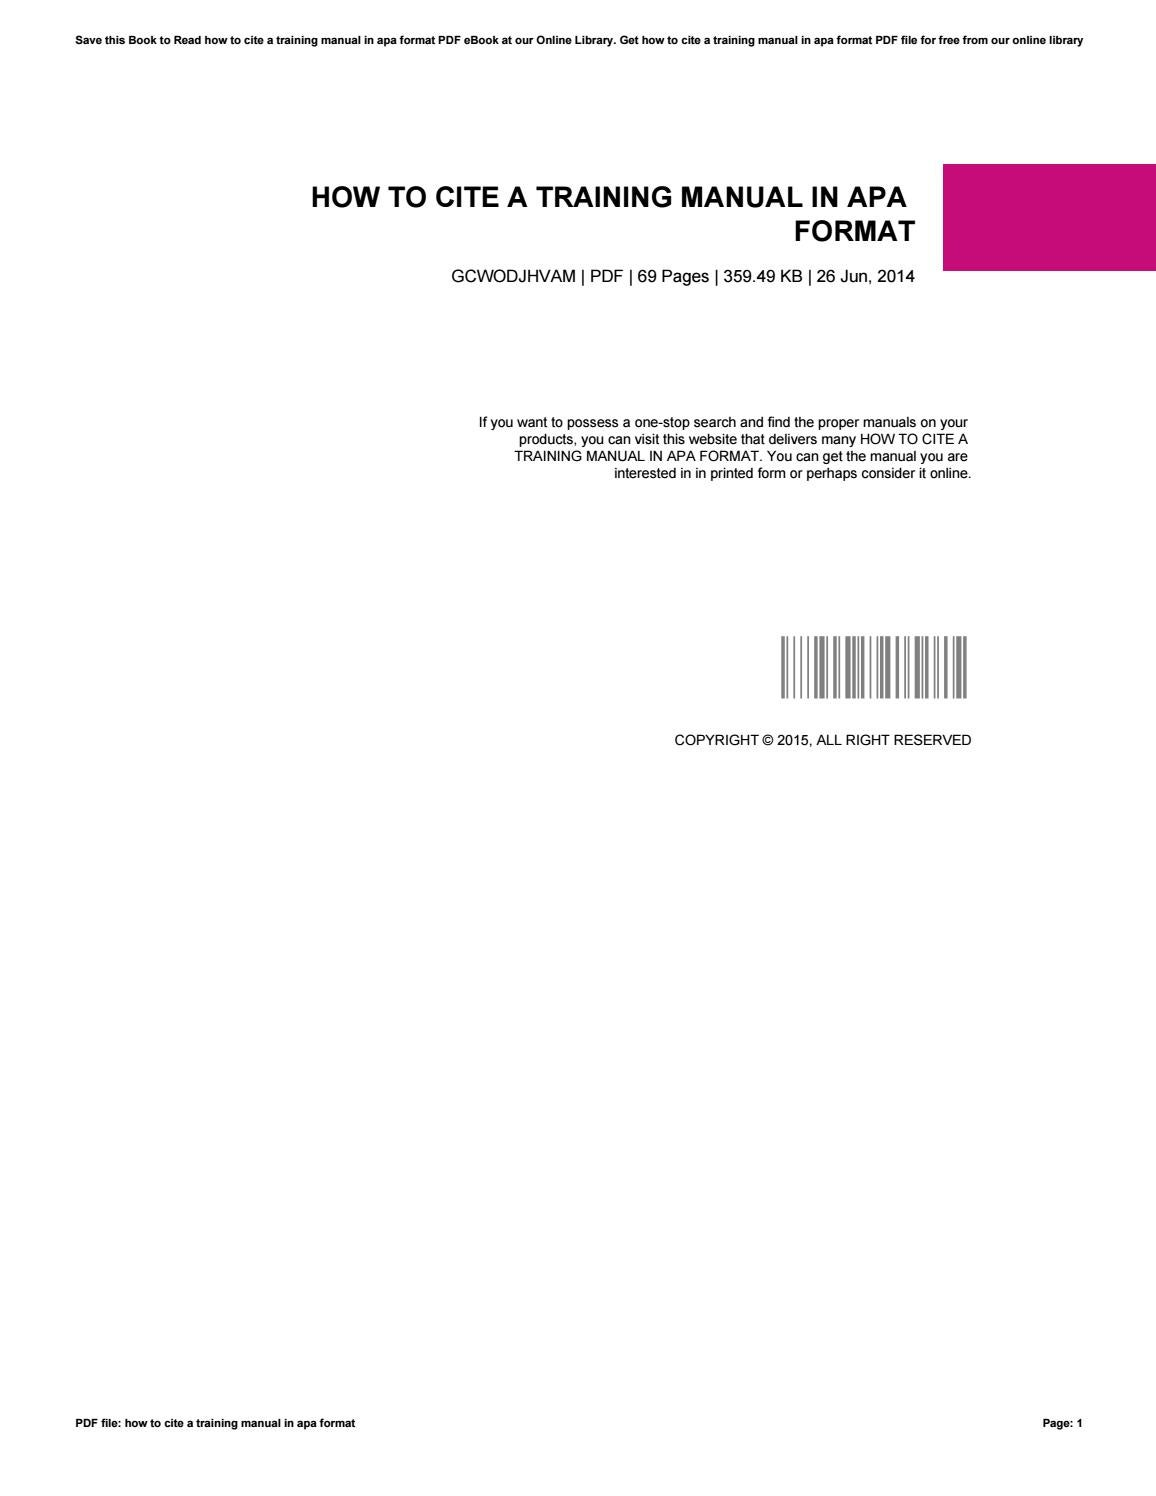 how to cite a training manual in apa format by dianalawrence2952 issuu